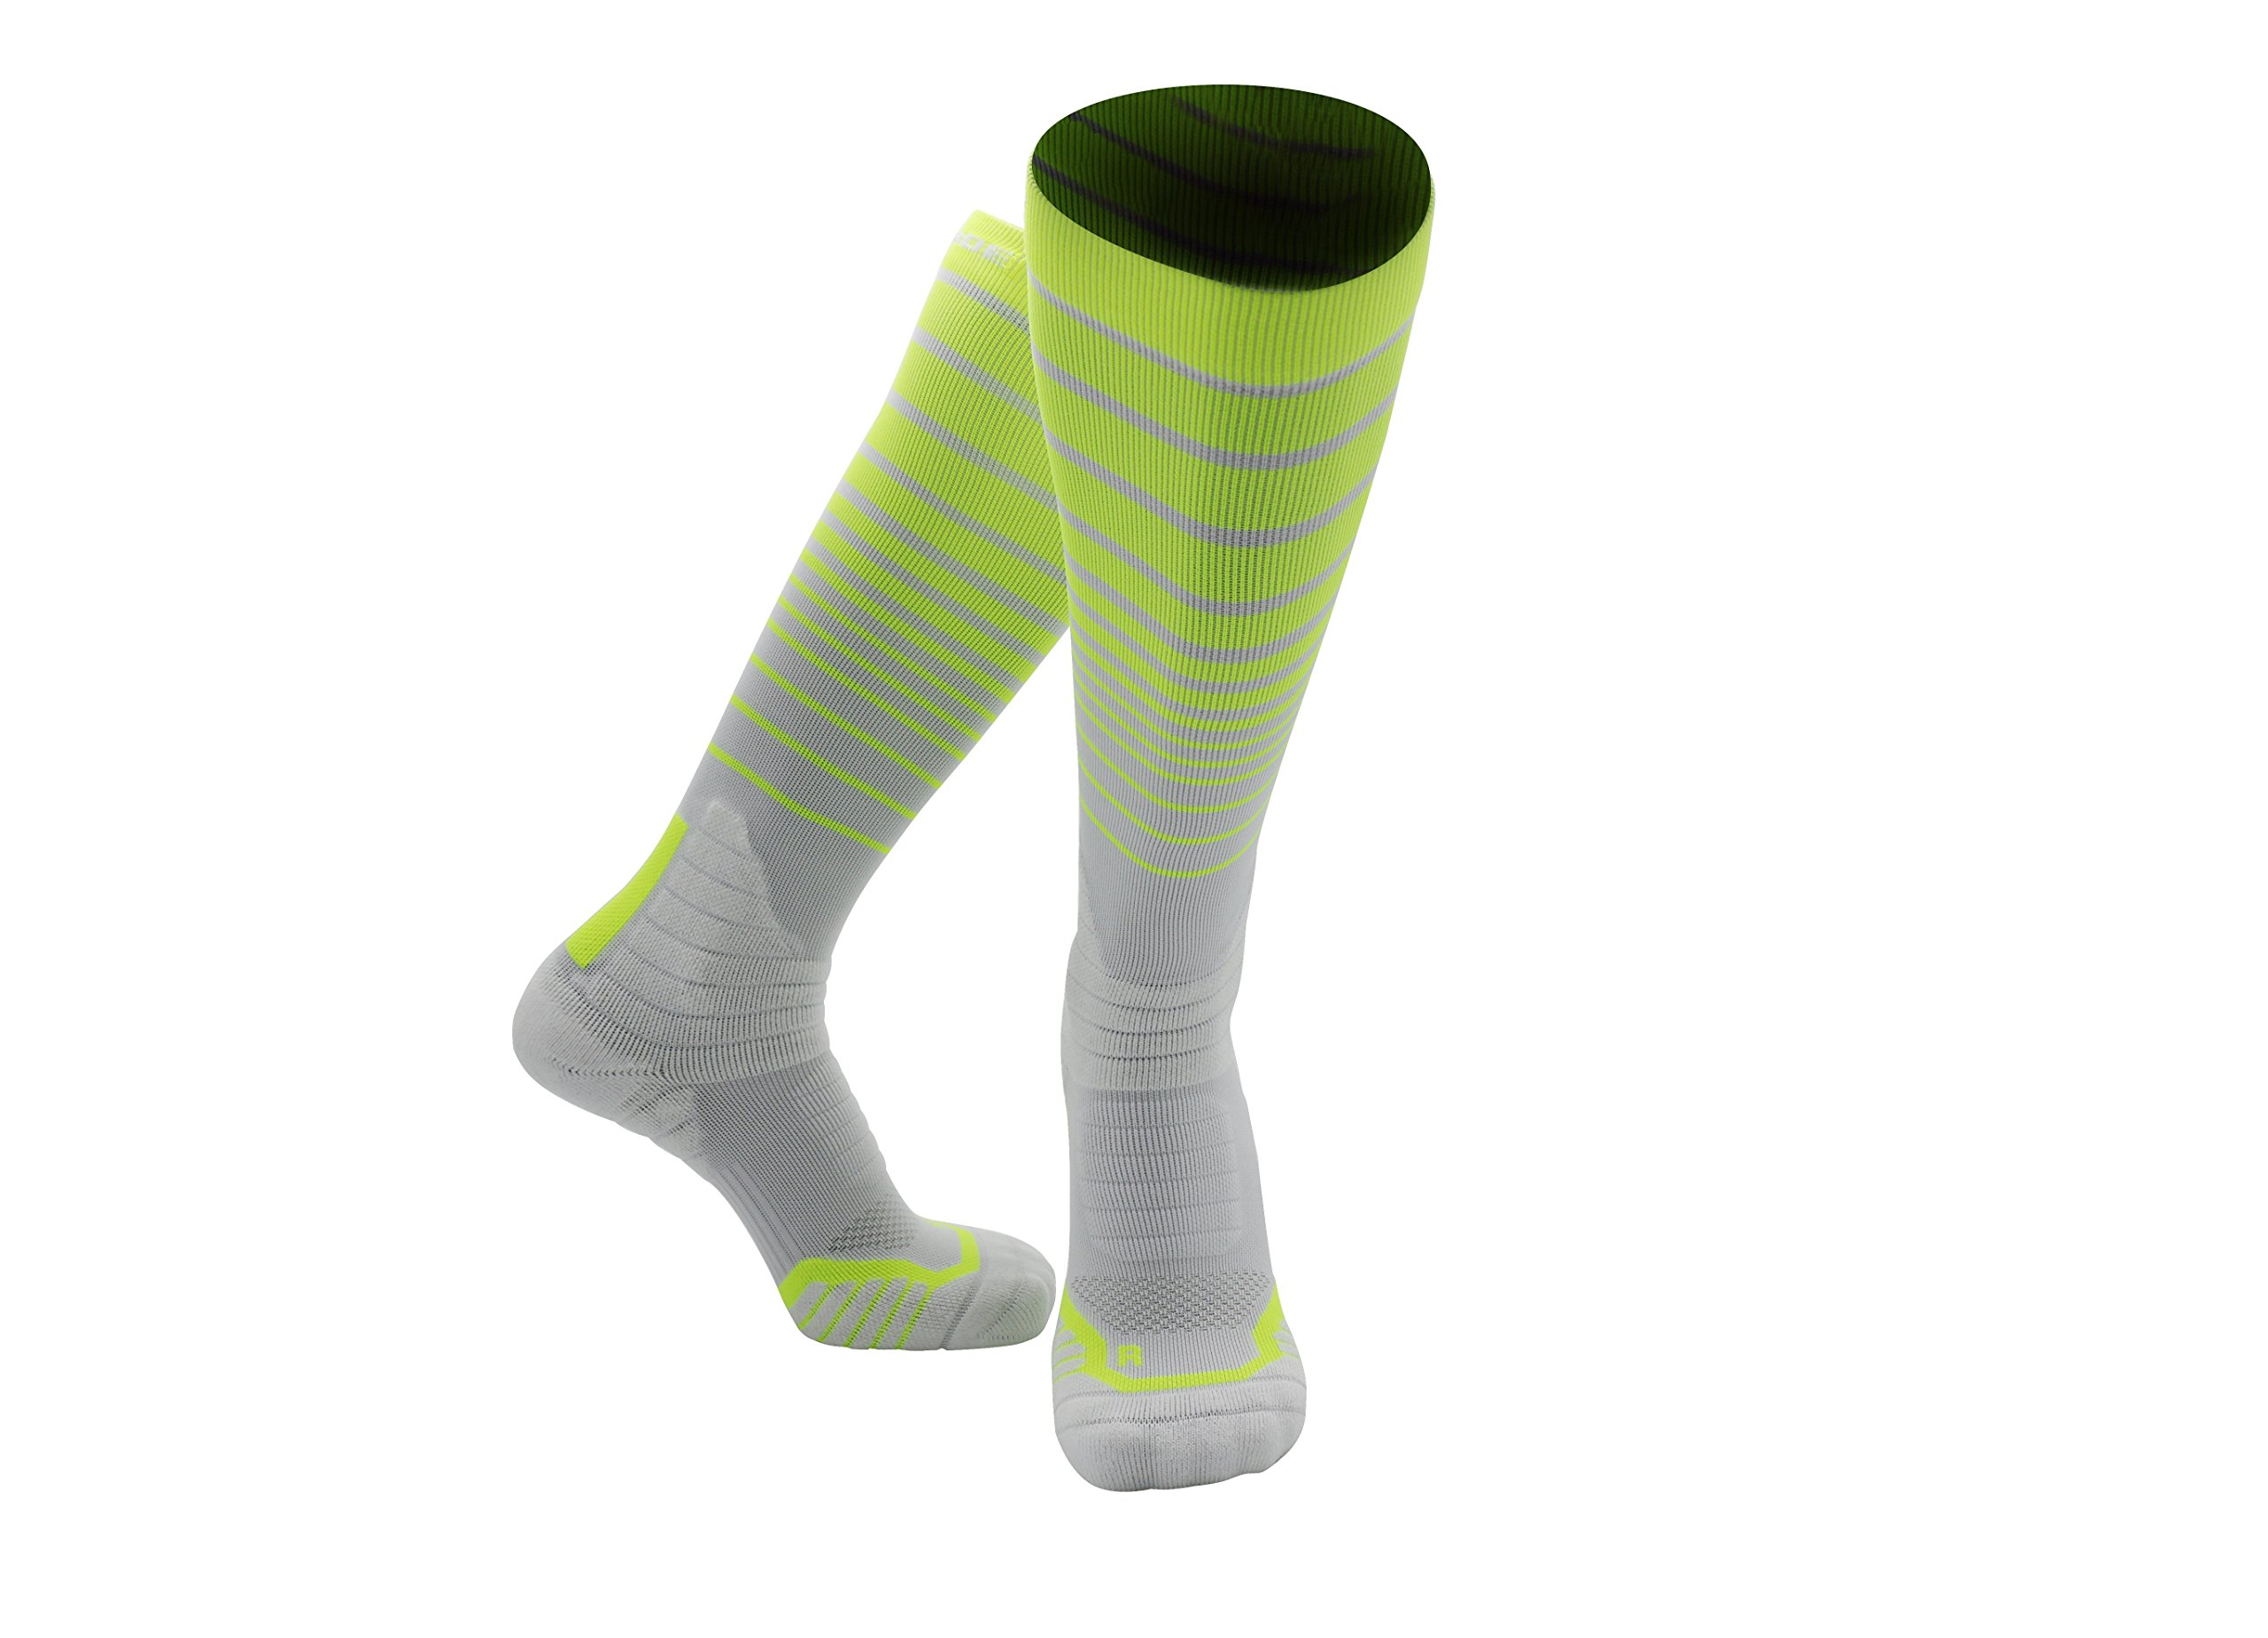 PRO ATHLETIC COMPRESSION SOCKS WOMEN & MEN - Highest Quality For ALL In/Outdoor Sports, GYM, Running, Sleeping, Long Walks/Stand/Sit, Diabetic, Maternity, Traveling, (S-XL Sizes 4-14 Unisex)White